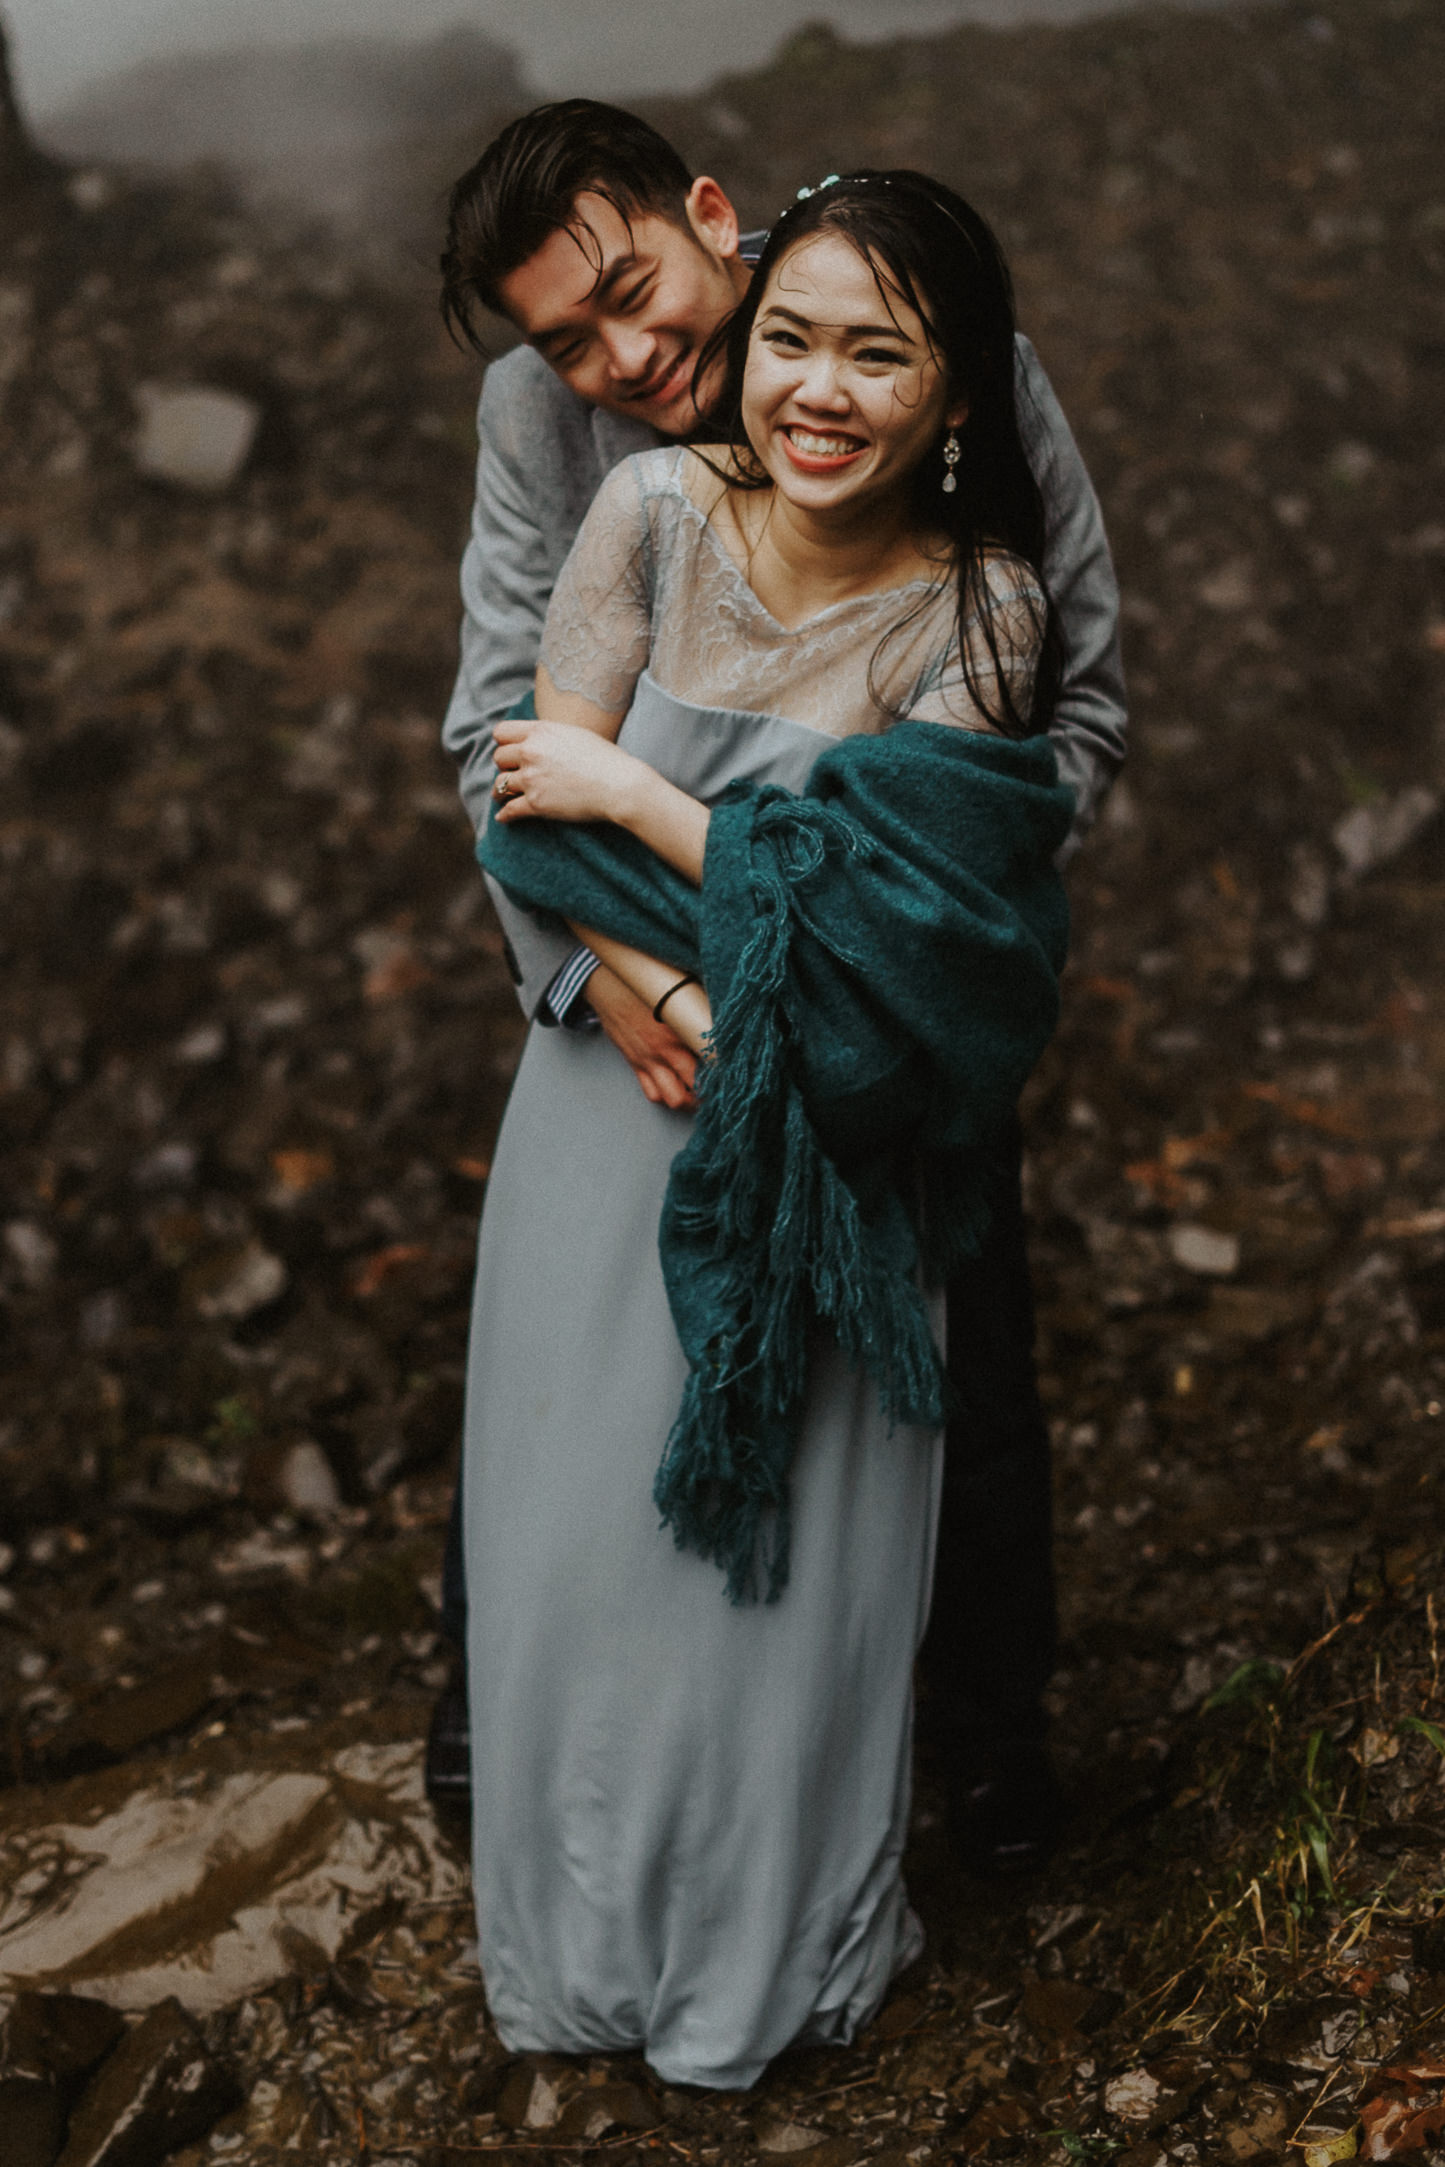 Hug behind engagement Portland photography